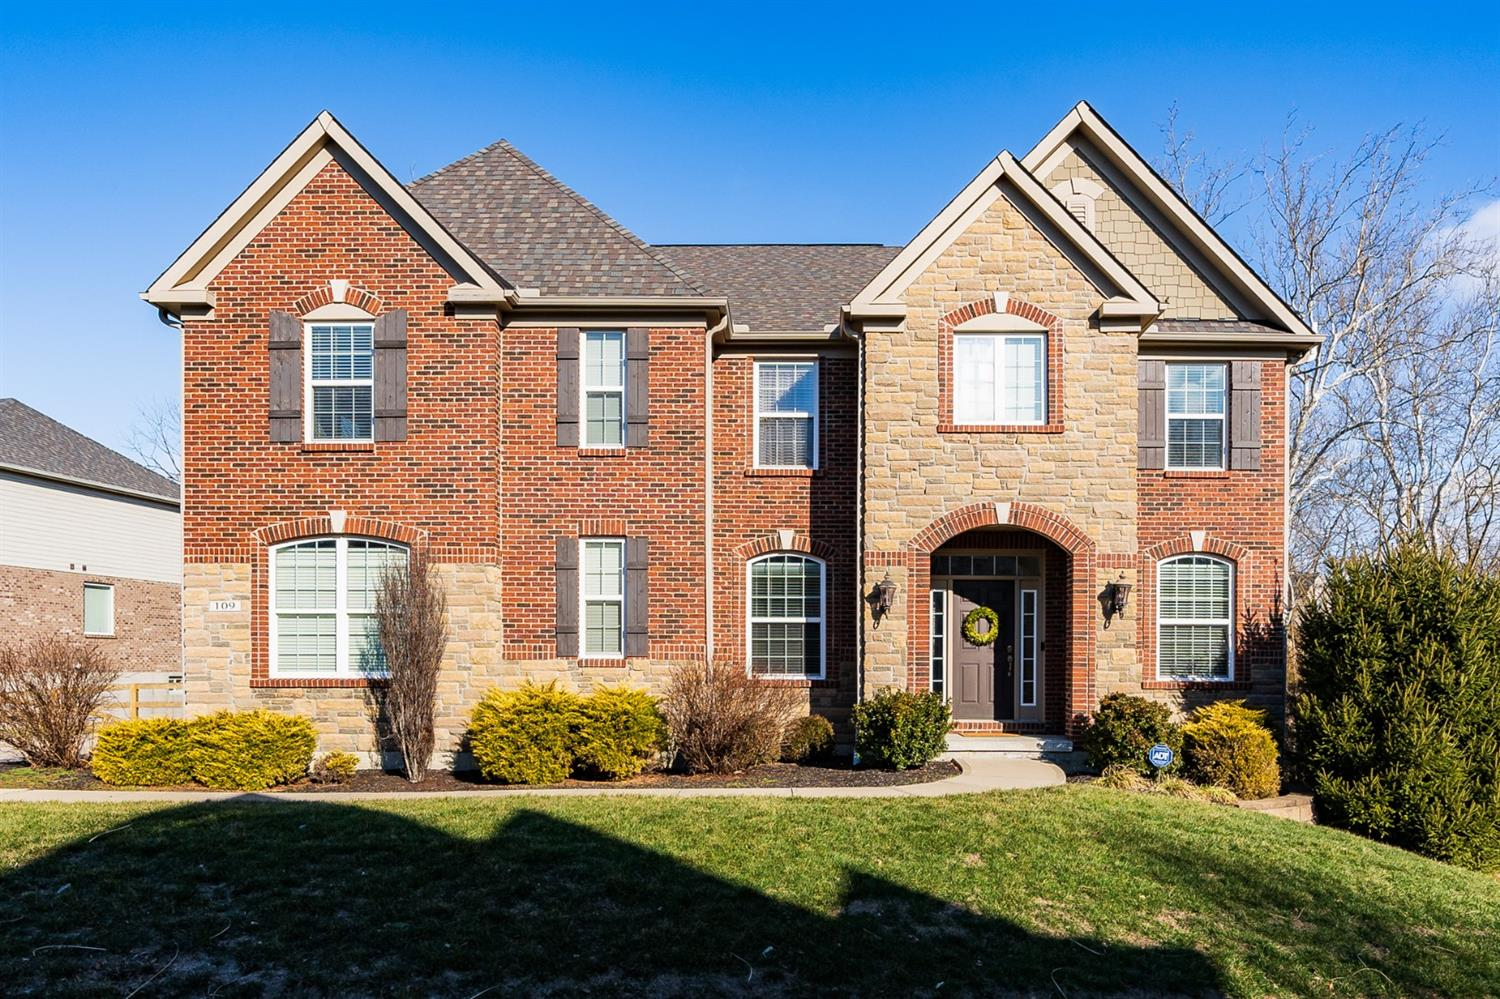 Property for sale at 109 Colonial Drive, Loveland,  Ohio 45140